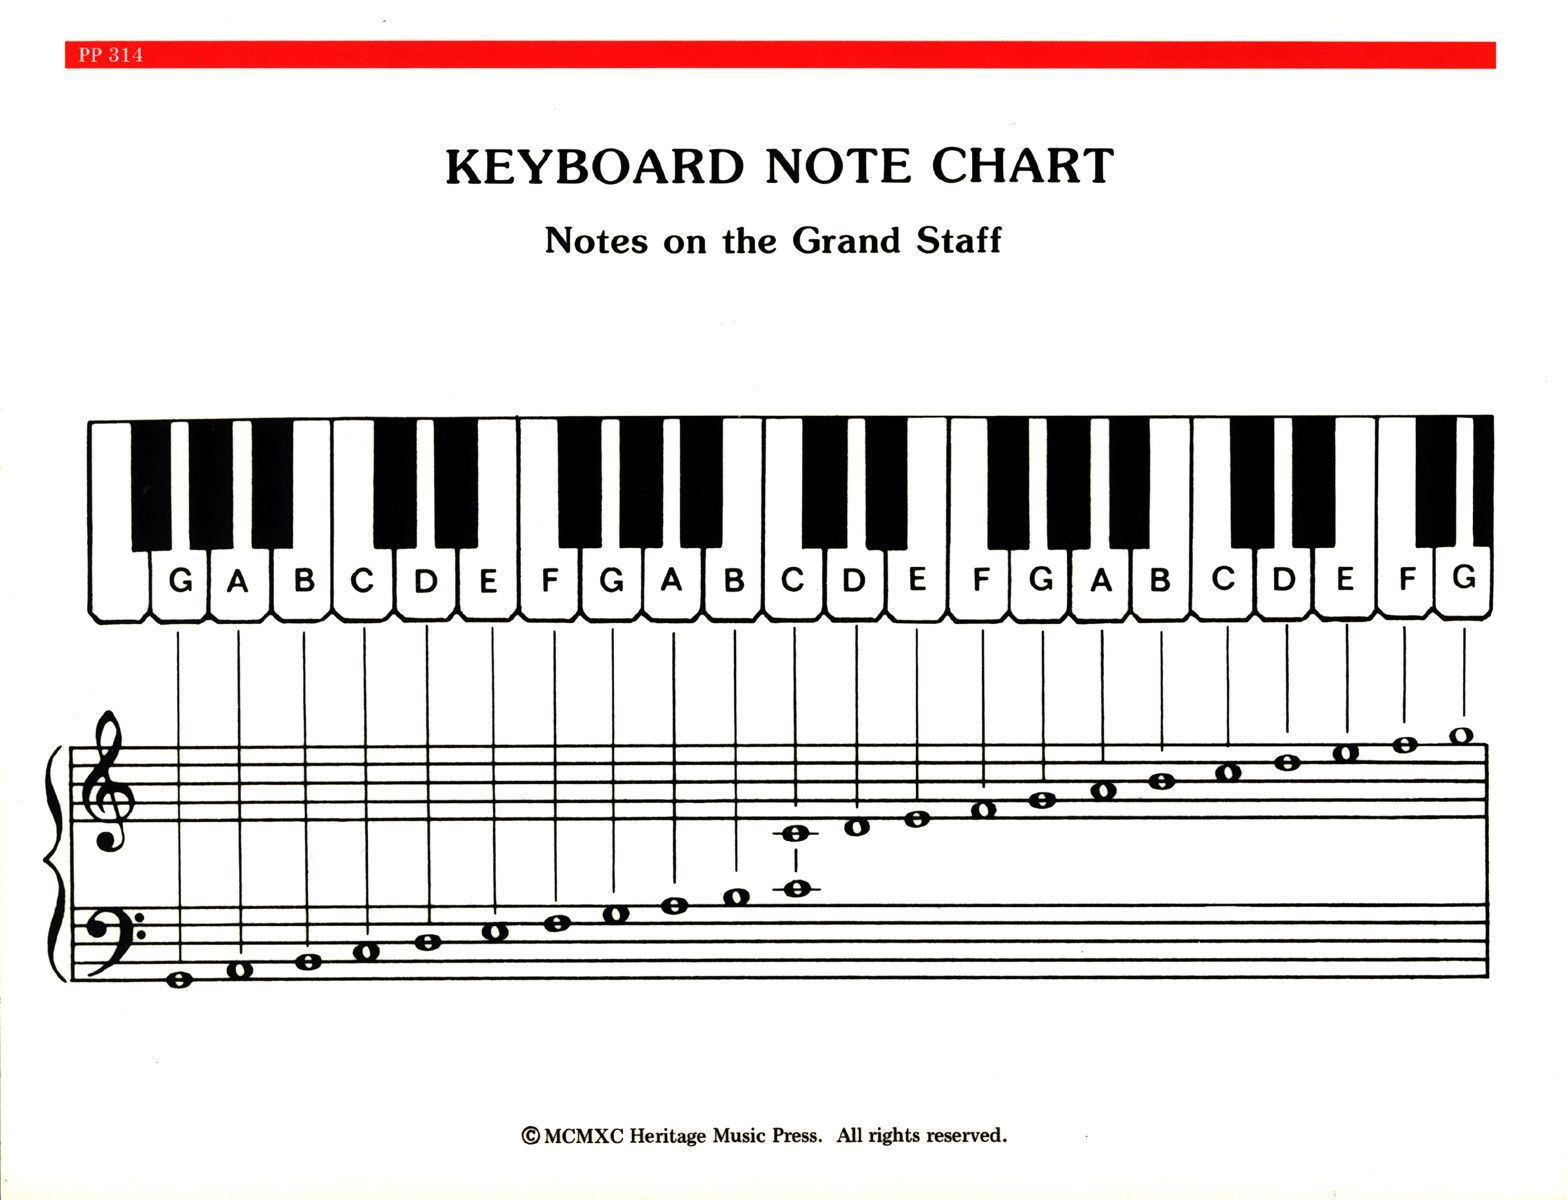 Elementary Piano Note Chord Chart Piano Chords Chart Piano Music Notes Piano Chart